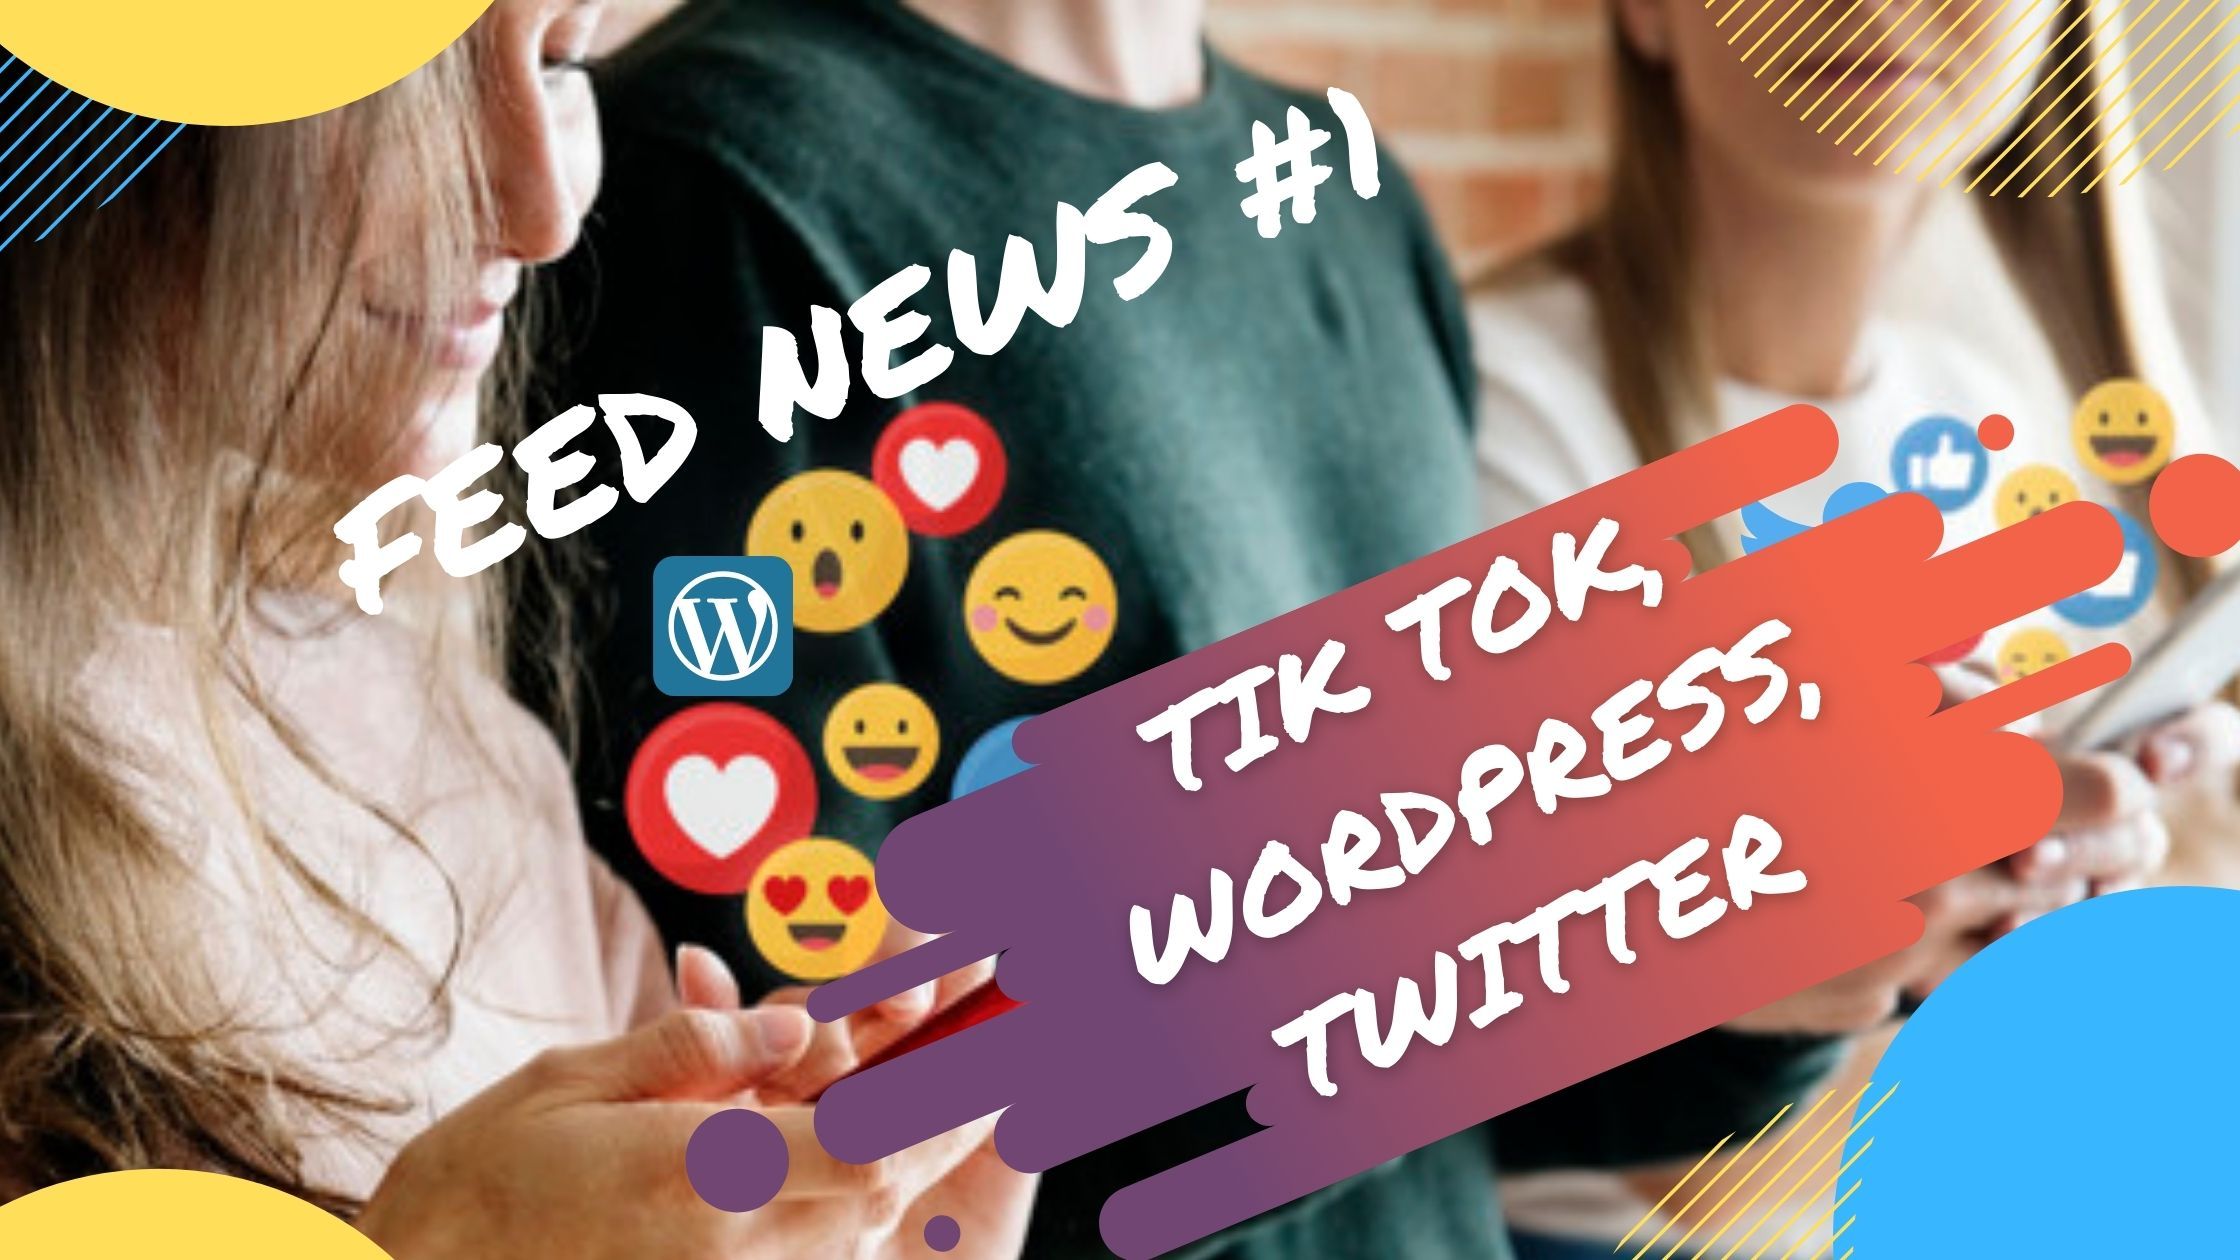 Feed News #1 Août : Tik Tok, WordPress, Twitter